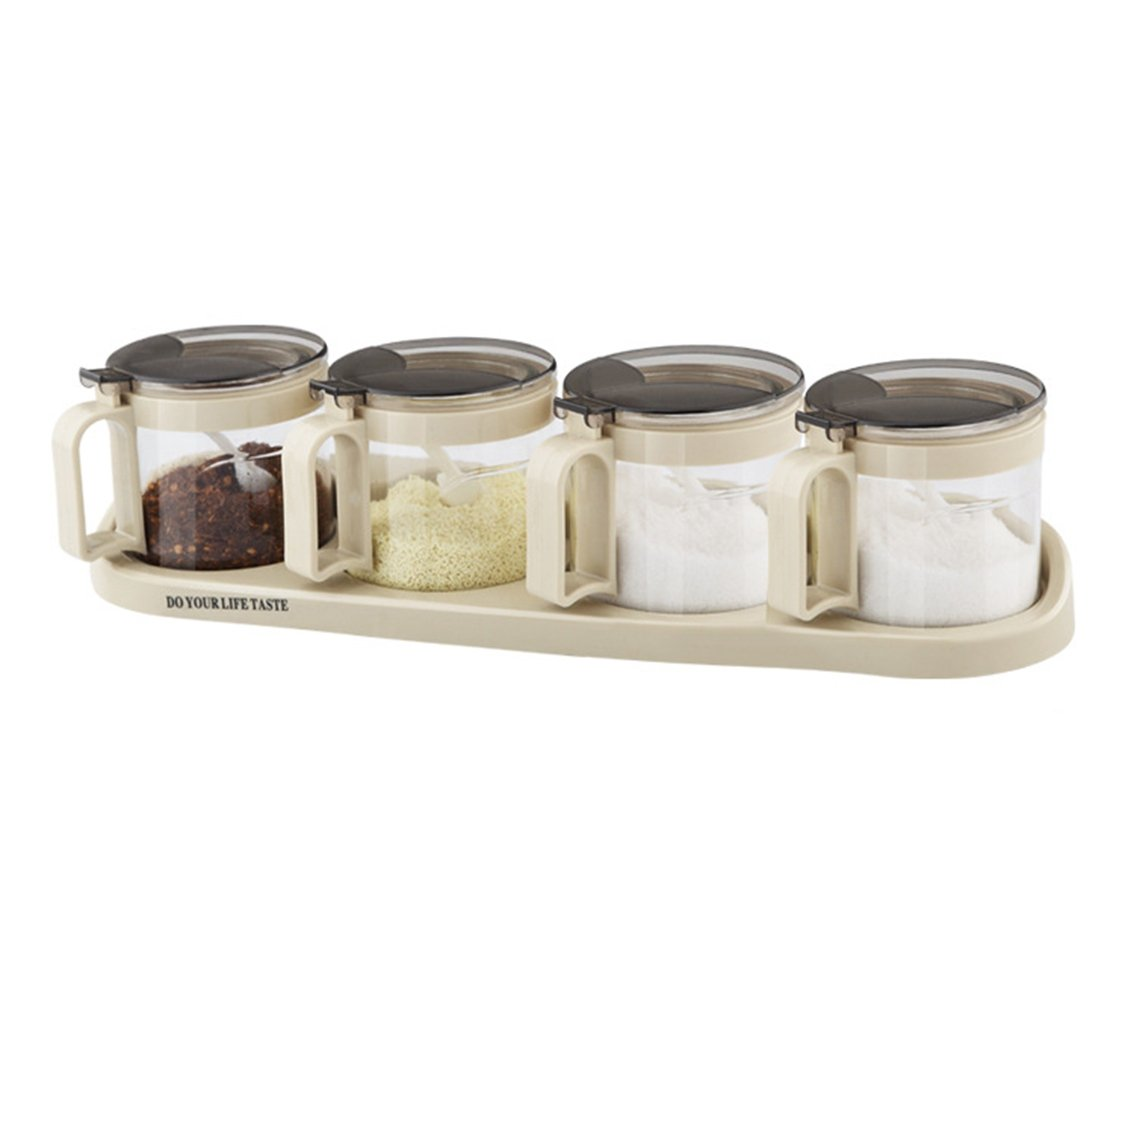 Relaxdays JIAO Bamboo Spice Preserving Glass Jar Set 12 x 31 x 12 cm Spice Holder of 3 Glass Containers with Spoons as Alternative to Spice Rack Kitchen Storage Natural